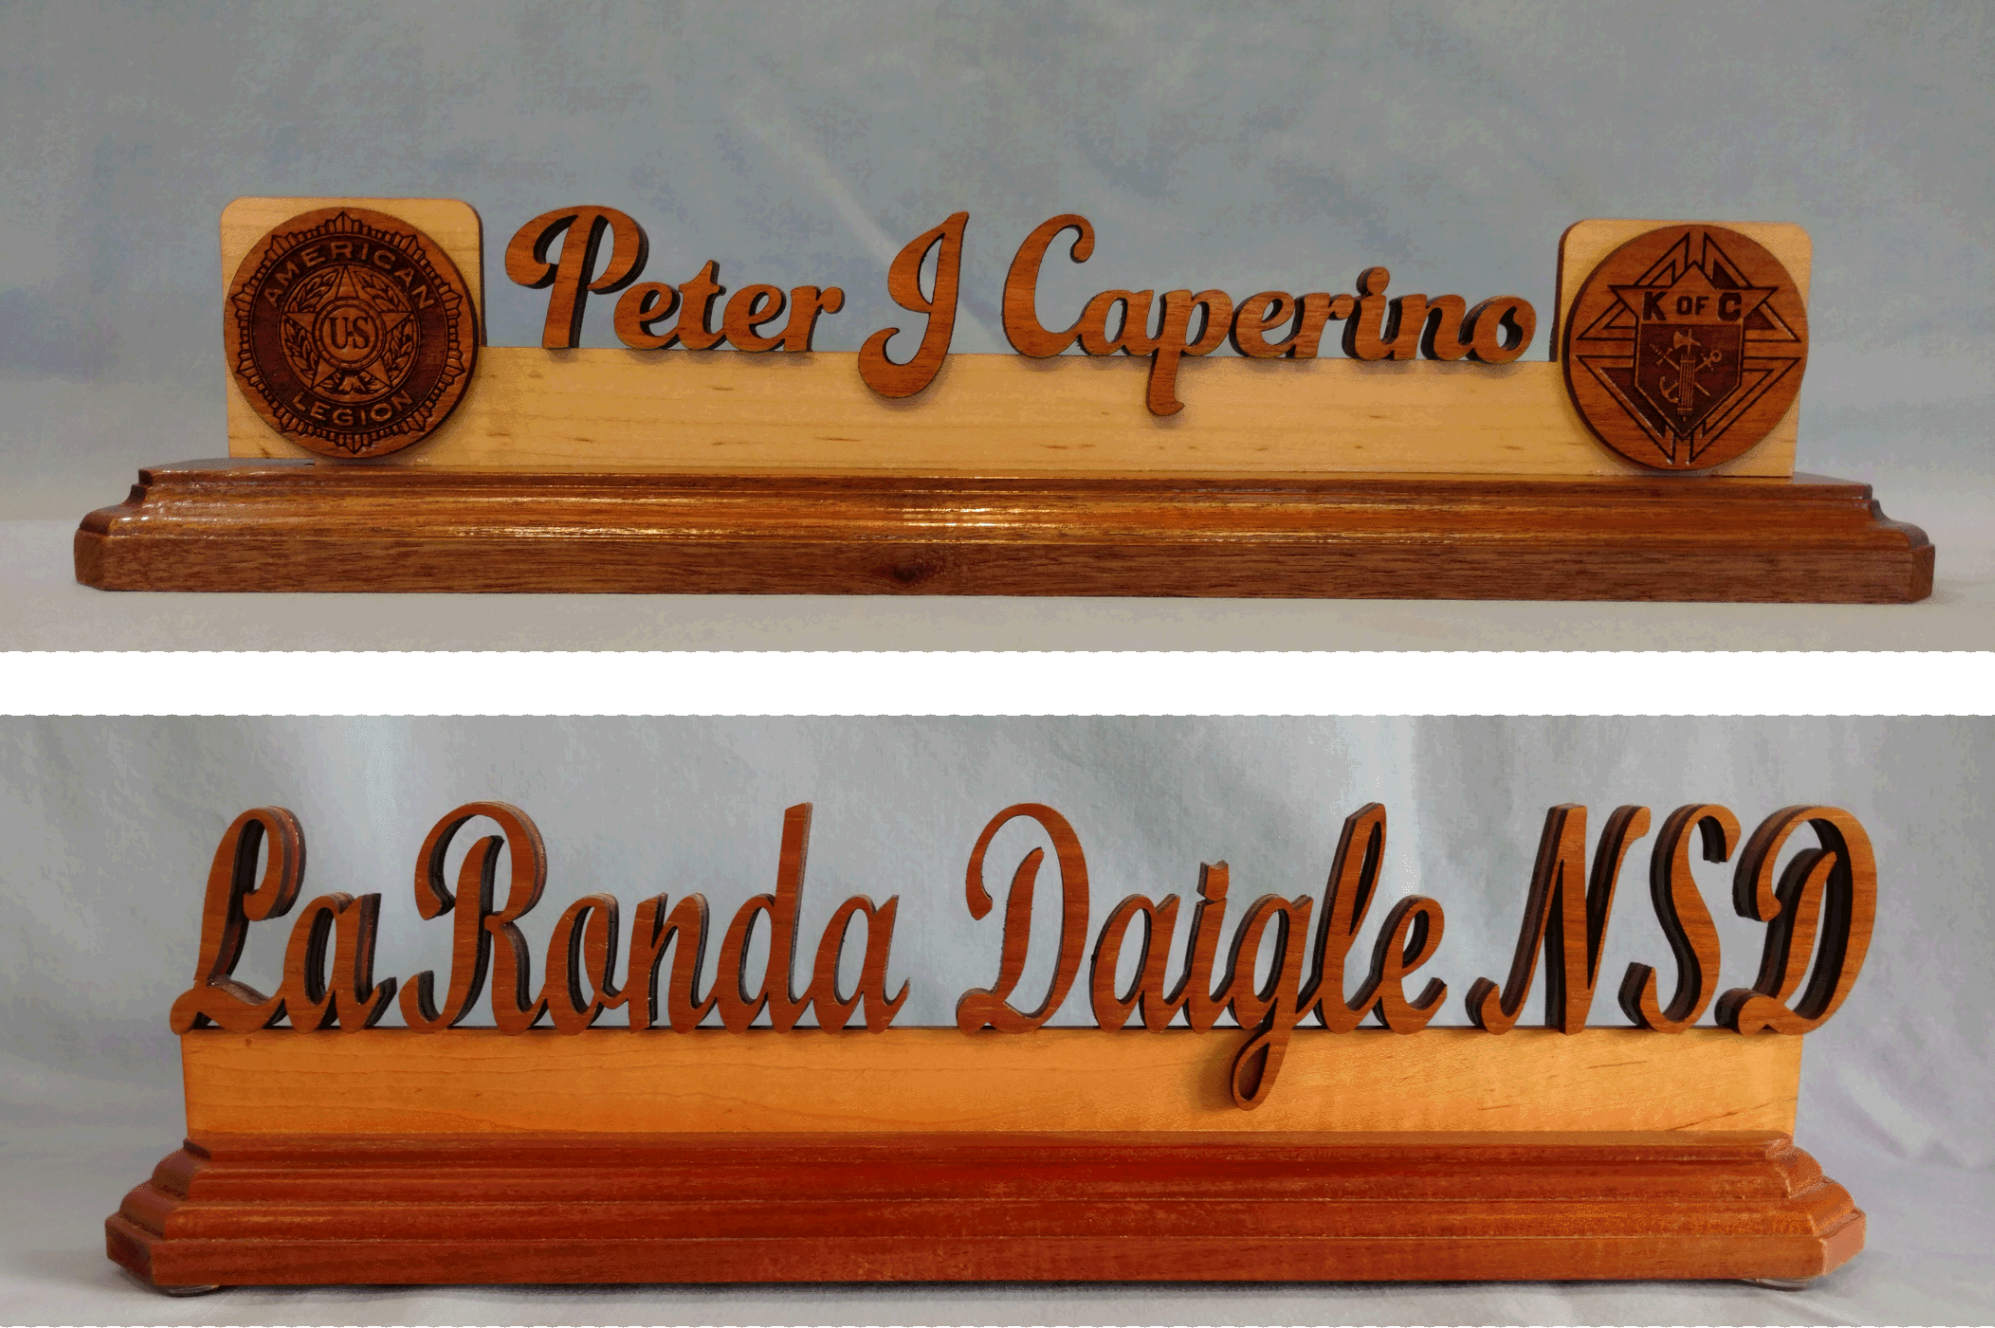 The Desk Name Plate is made from contrasting woods. A lighter wood is used as a support sandwiched between a darker wood. The base is either Mahogany or walnut. The woods used are laser engraved under the base.